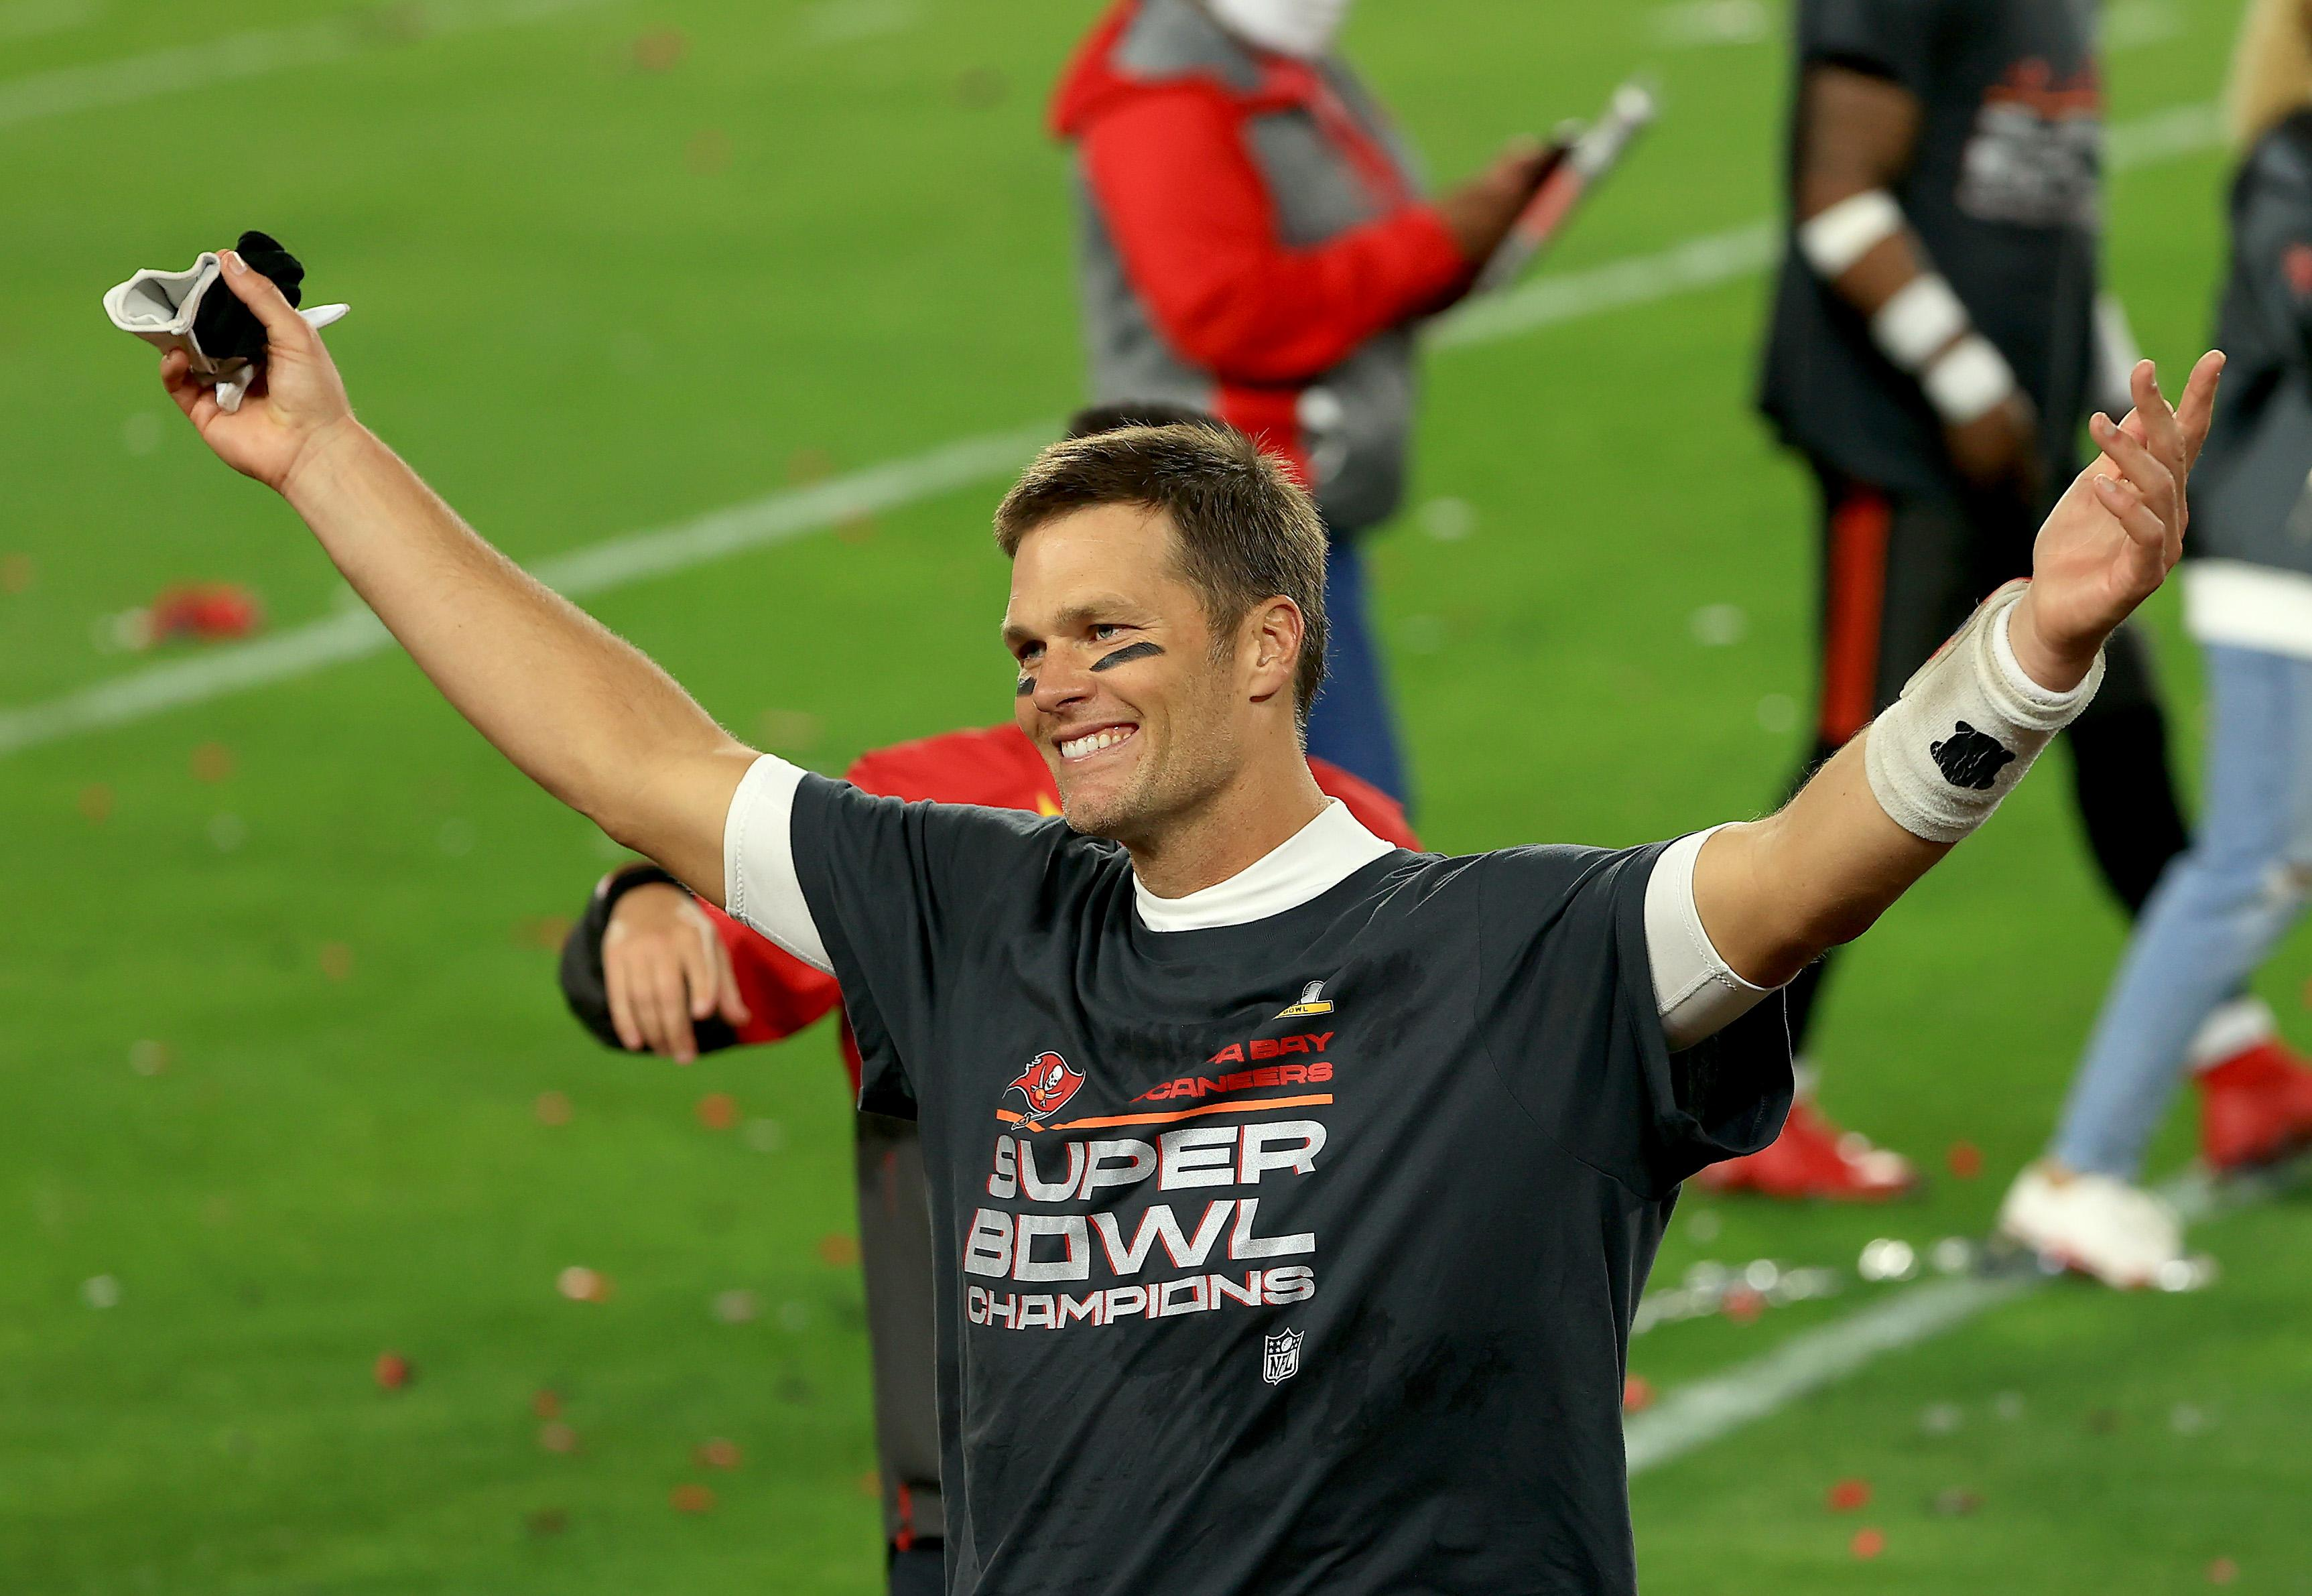 Tom Brady #12 of the Tampa Bay Buccaneers